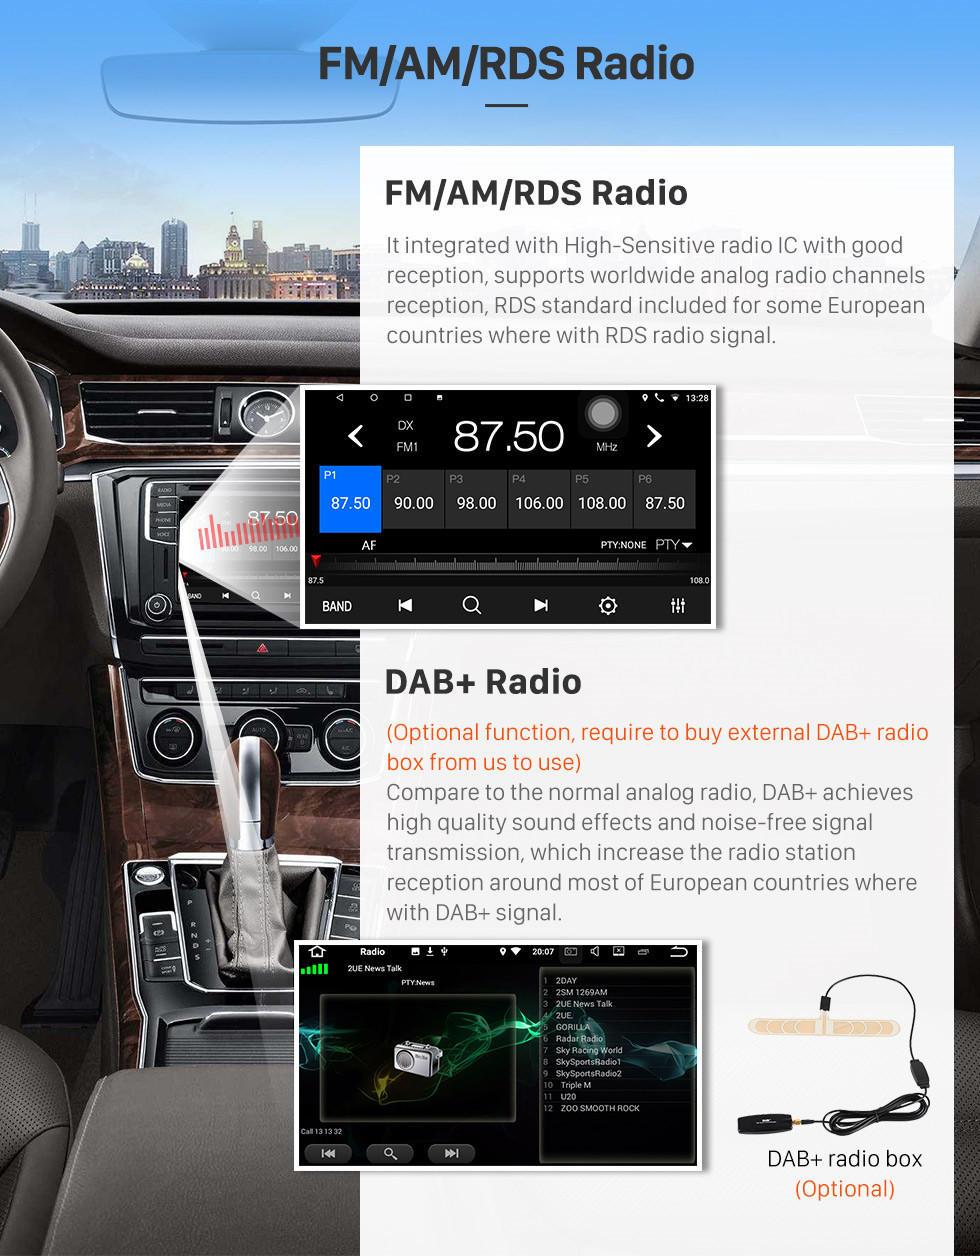 Seicane 8 Inch 2009-2014 Toyota ALPHARD Android 8.1 Radio GPS Navigation system with 3G WiFi Capacitive Touch Screen TPMS DVR OBD II Rear camera AUX Steering Wheel Control USB Bluetooth HD 1080P Video